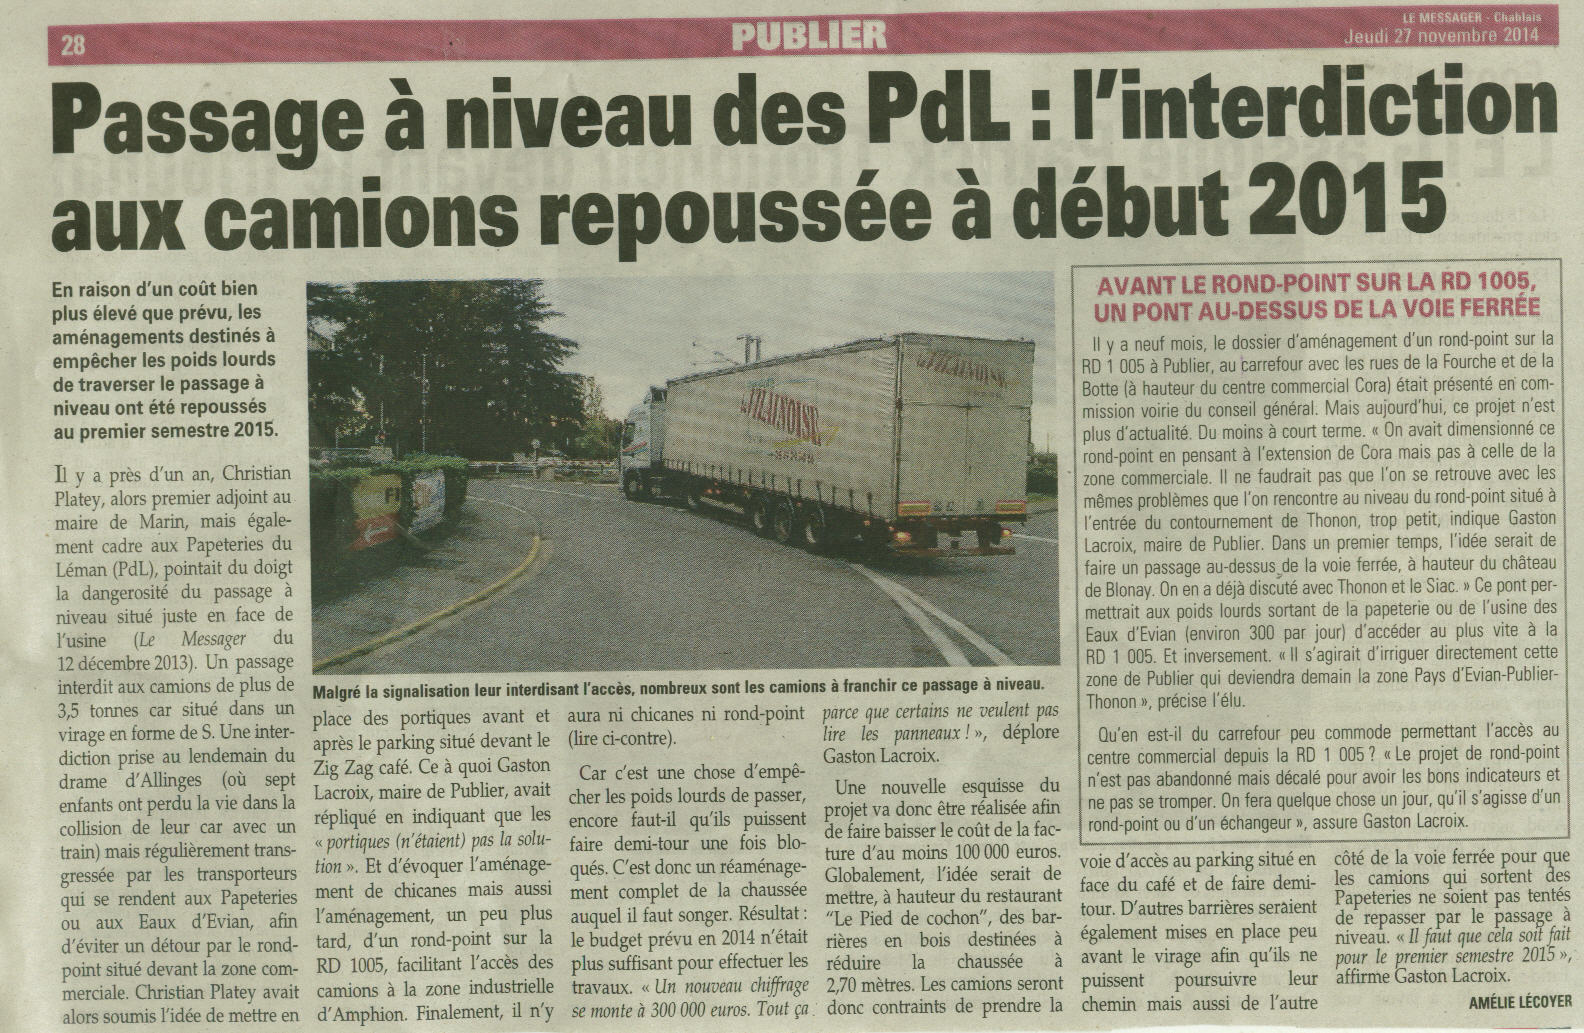 Article messager 2